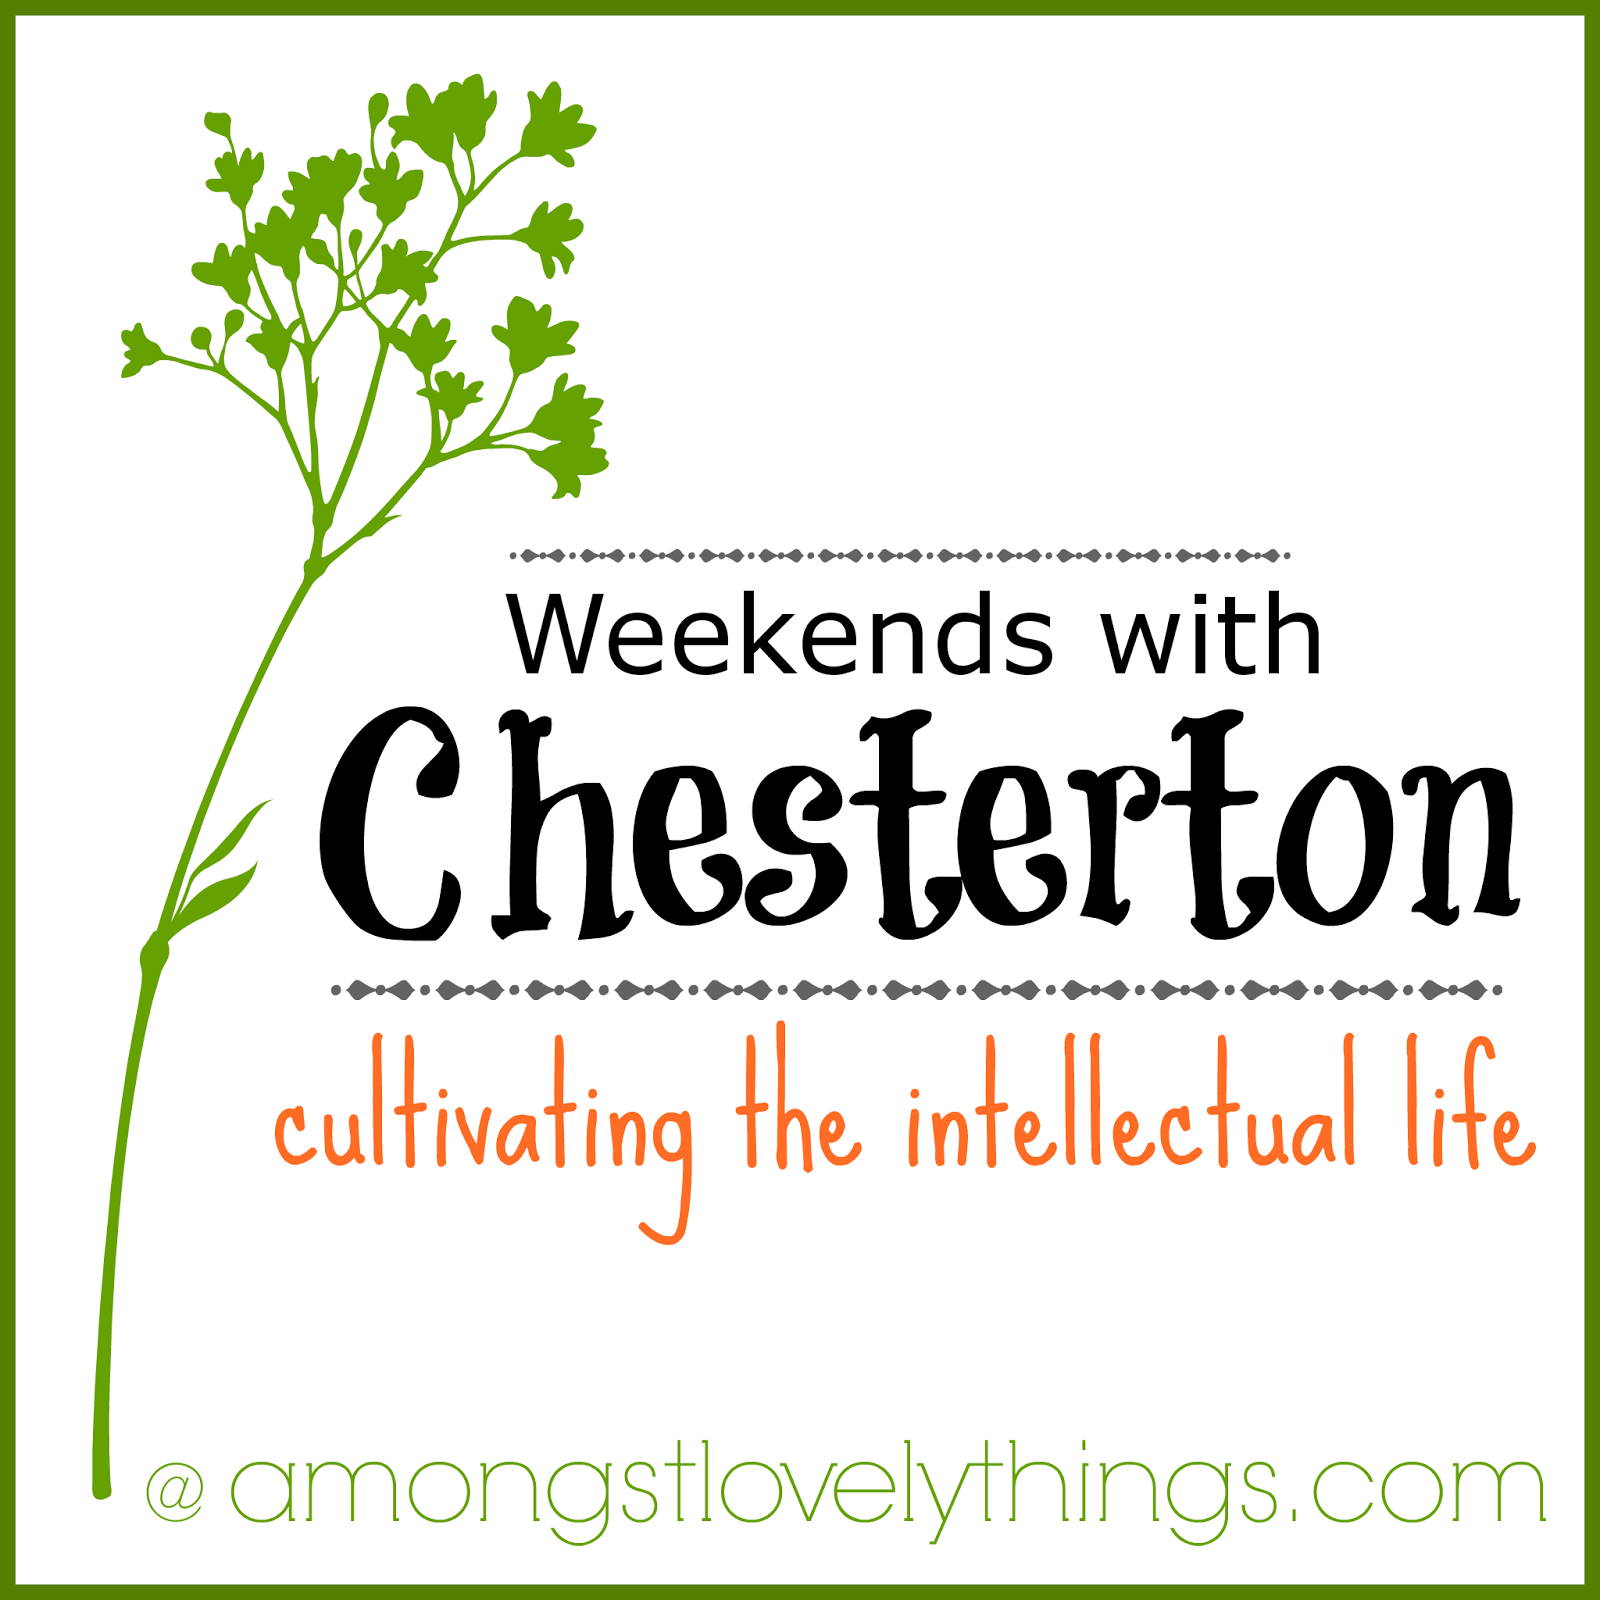 http://www.amongstlovelythings.com/2014/02/some-chestertonian-motivation.html#.UwDsMrSjUbI